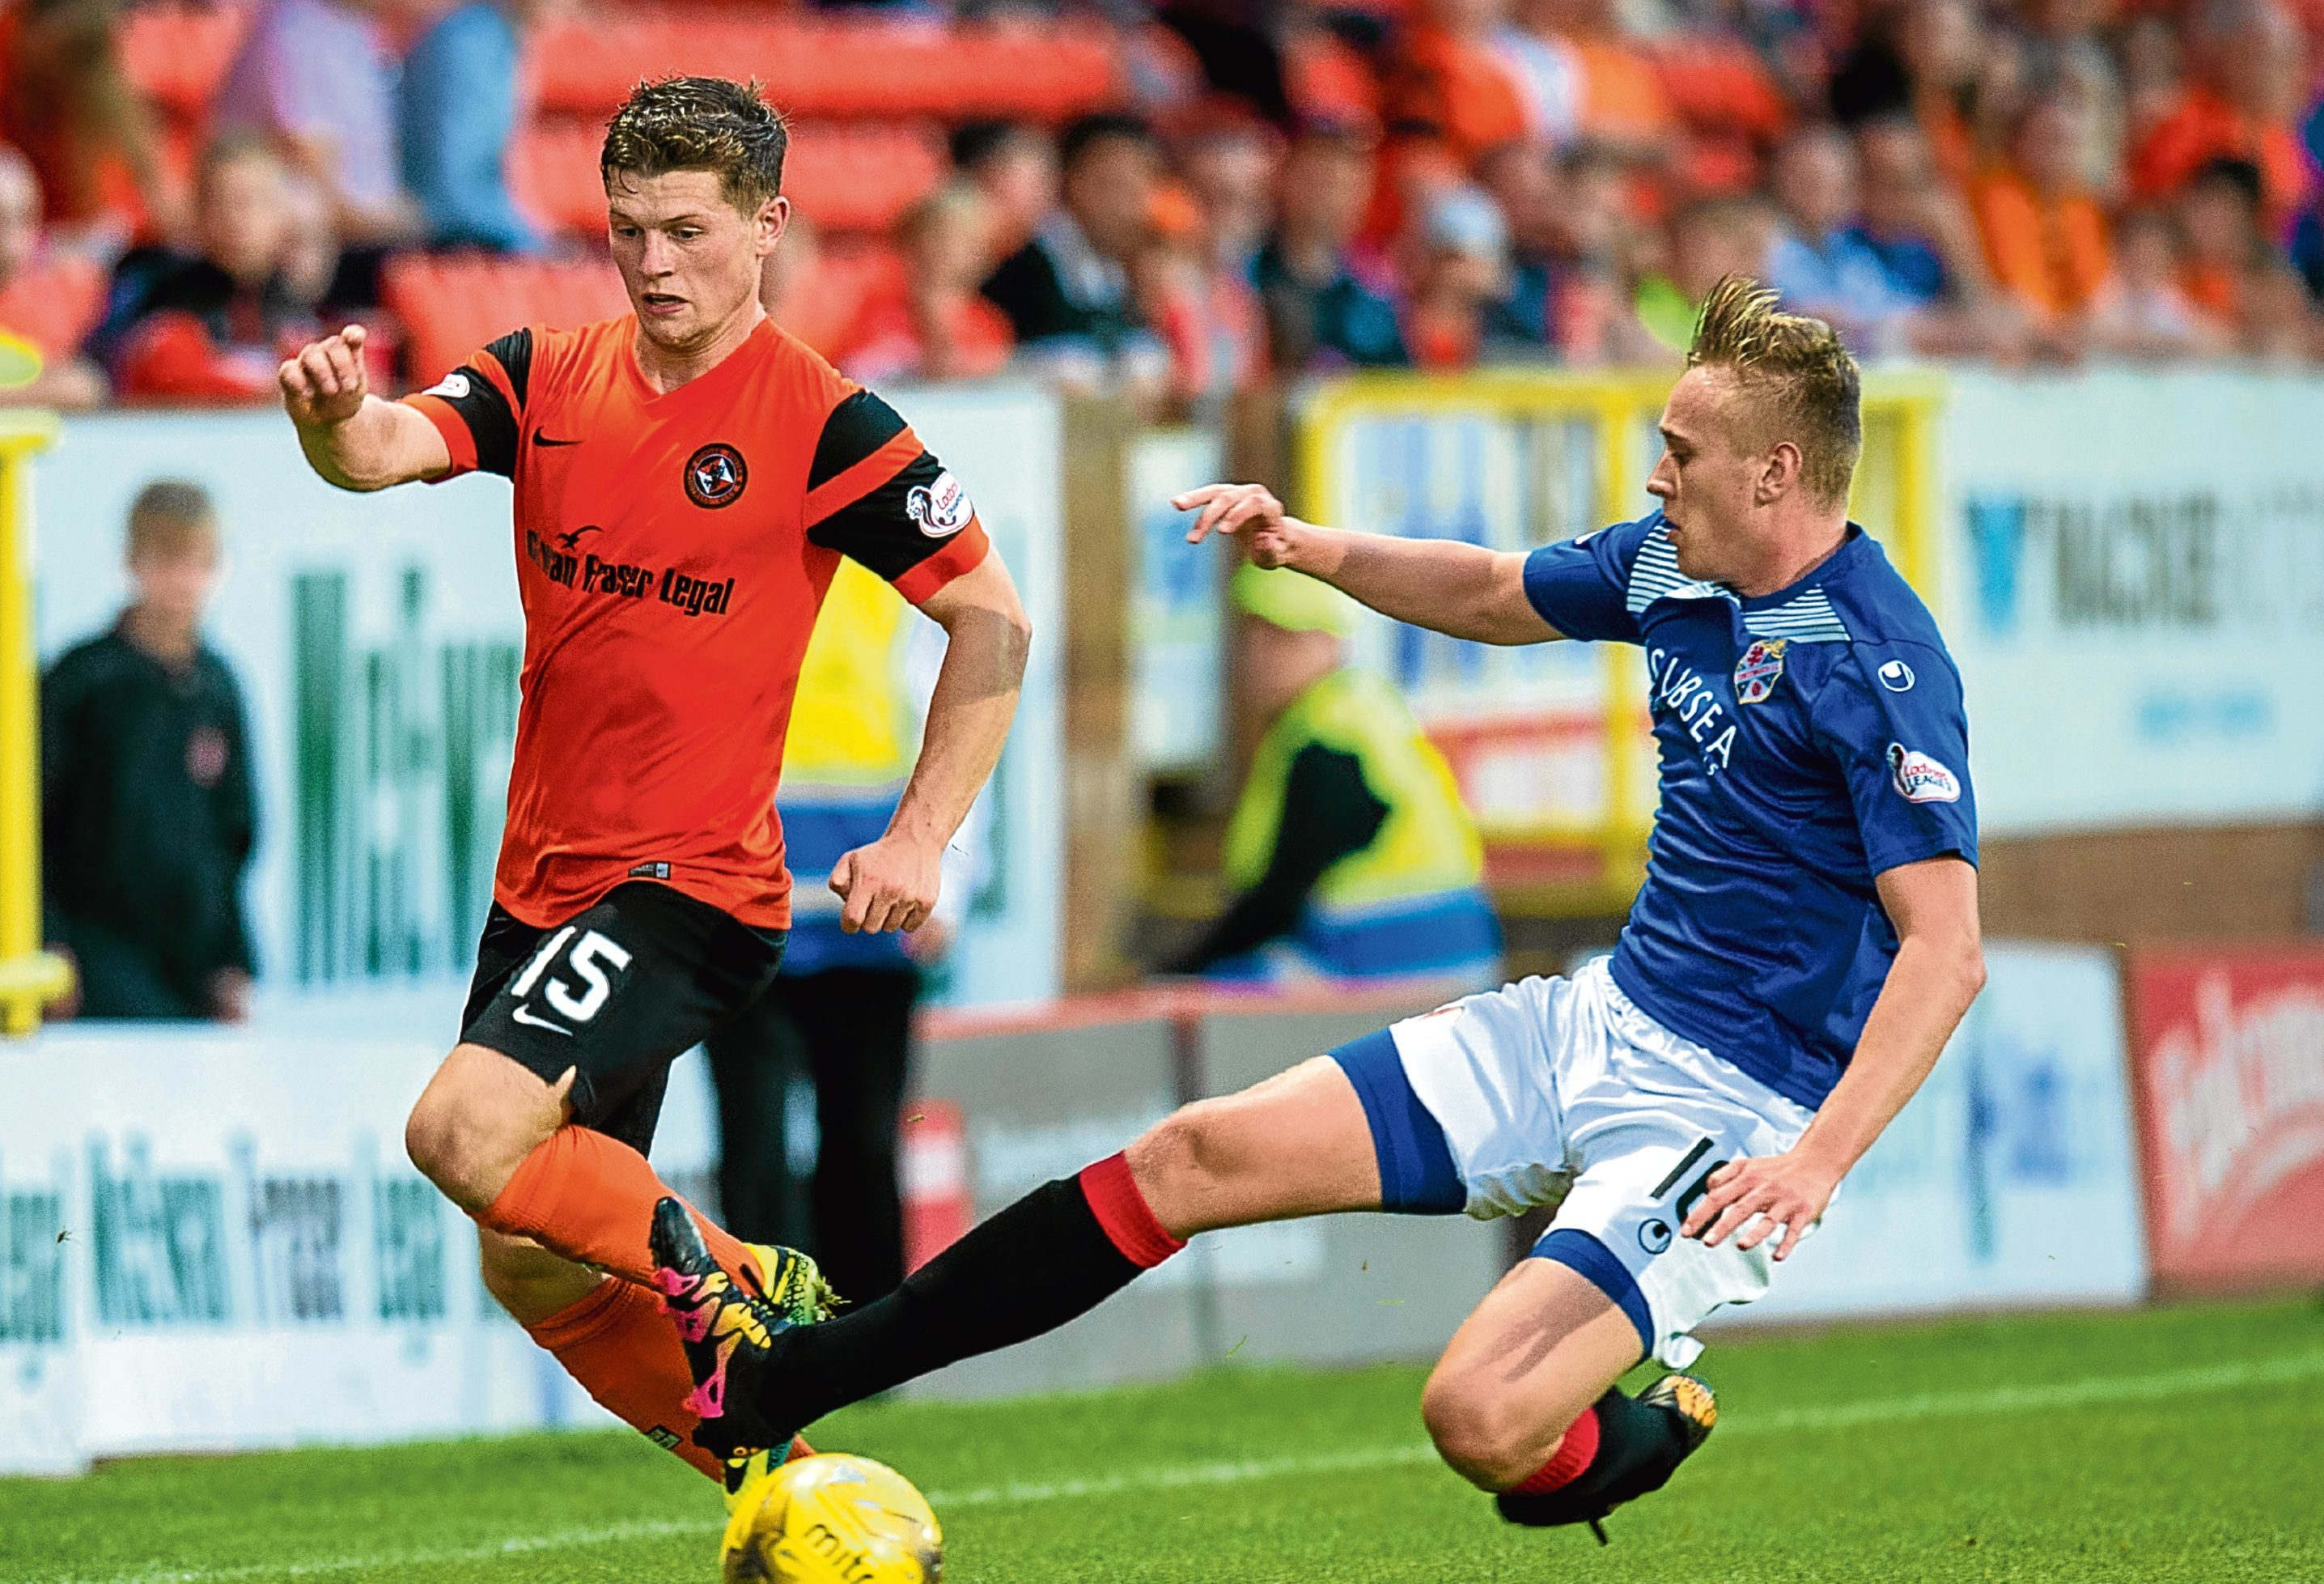 Cammy Smith in action against Cowdenbeath.